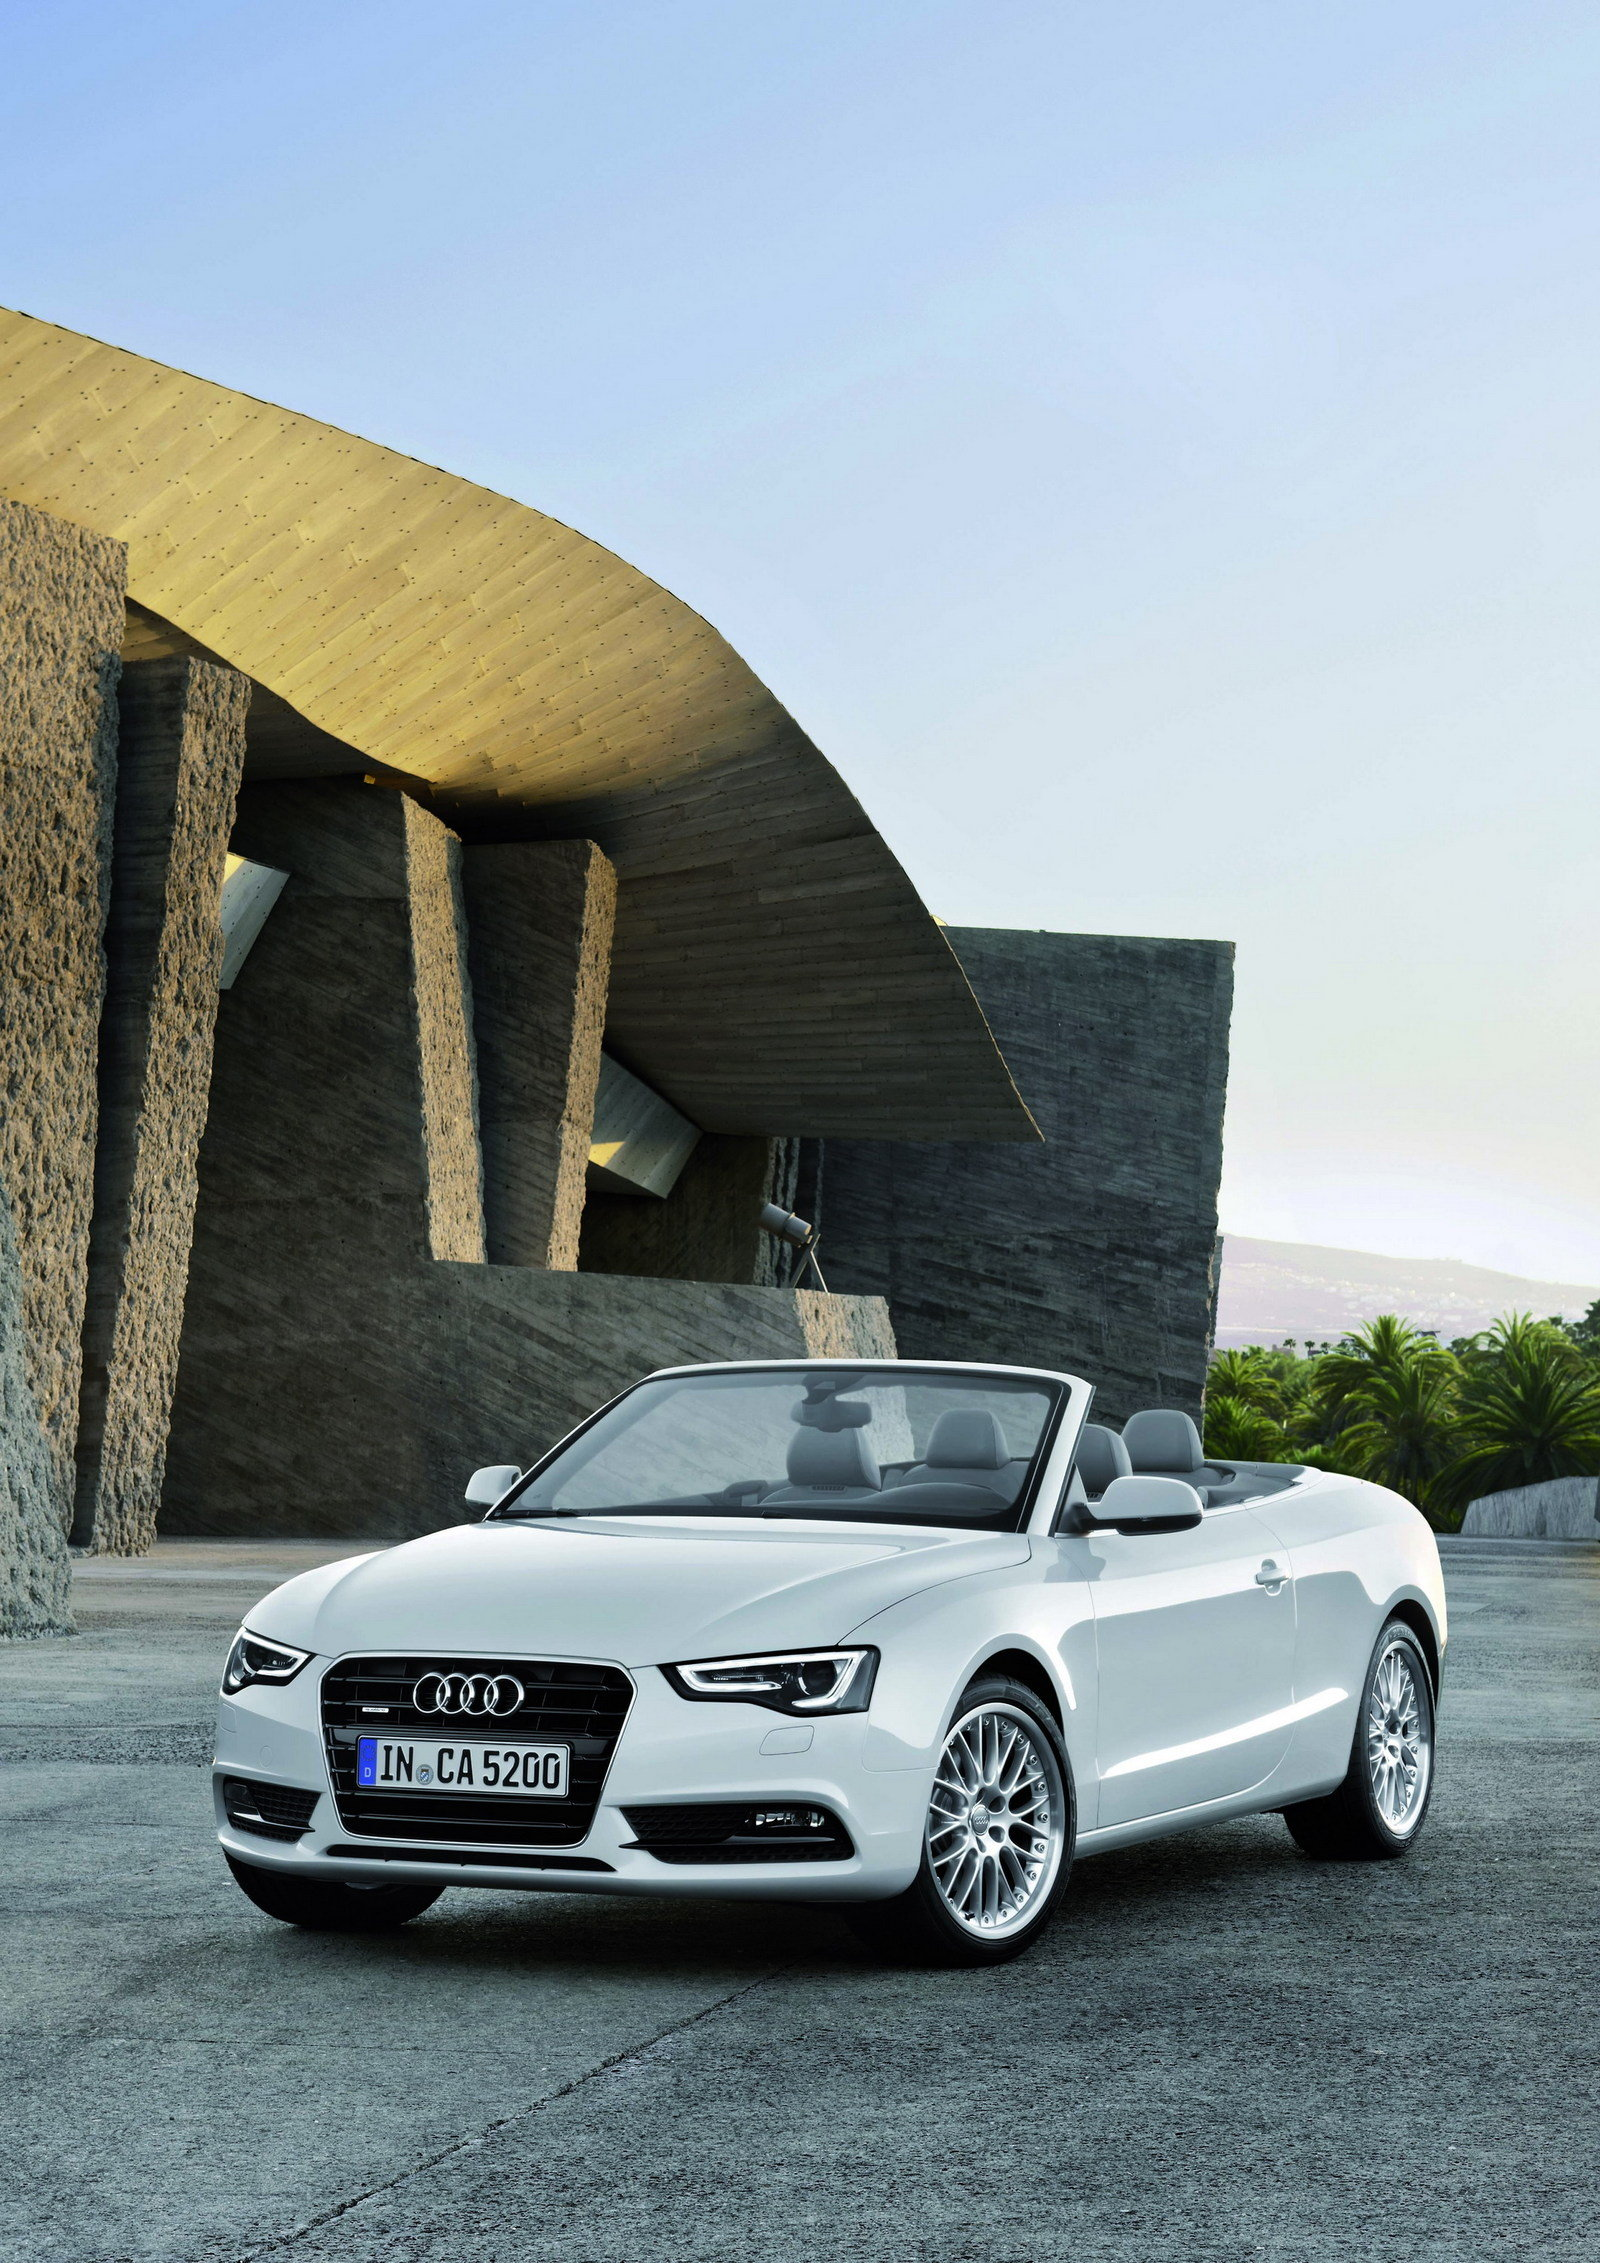 2014 audi a5 convertible picture 511607 car review top speed. Cars Review. Best American Auto & Cars Review